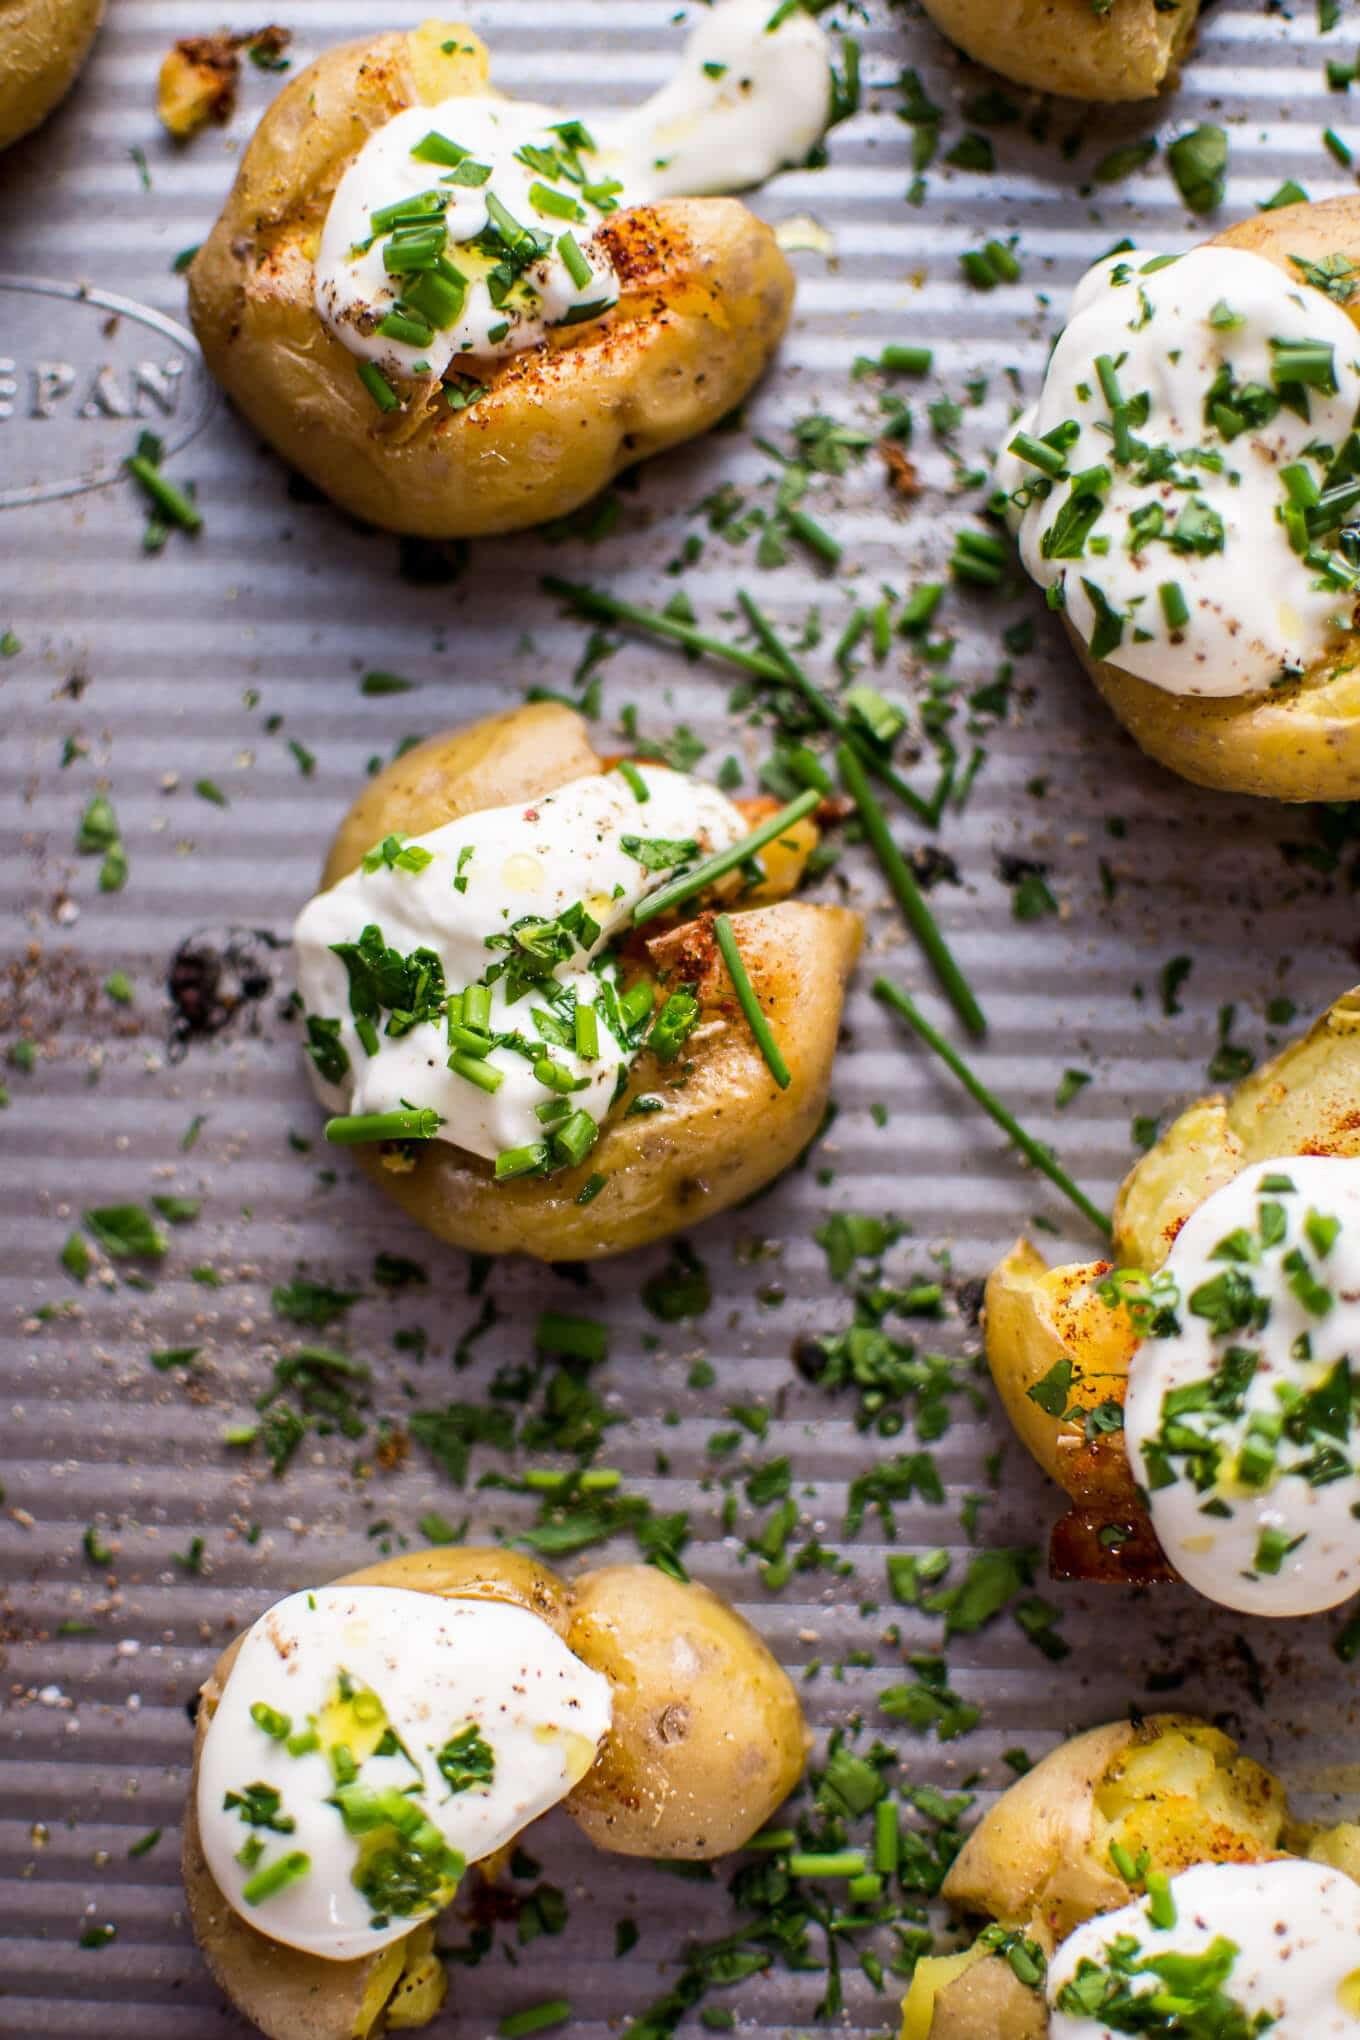 These garlic and lemon smashed potatoes are a fresh and flavorful side dish or party finger food. Replacing sour cream with Greek yogurt also makes these healthier!